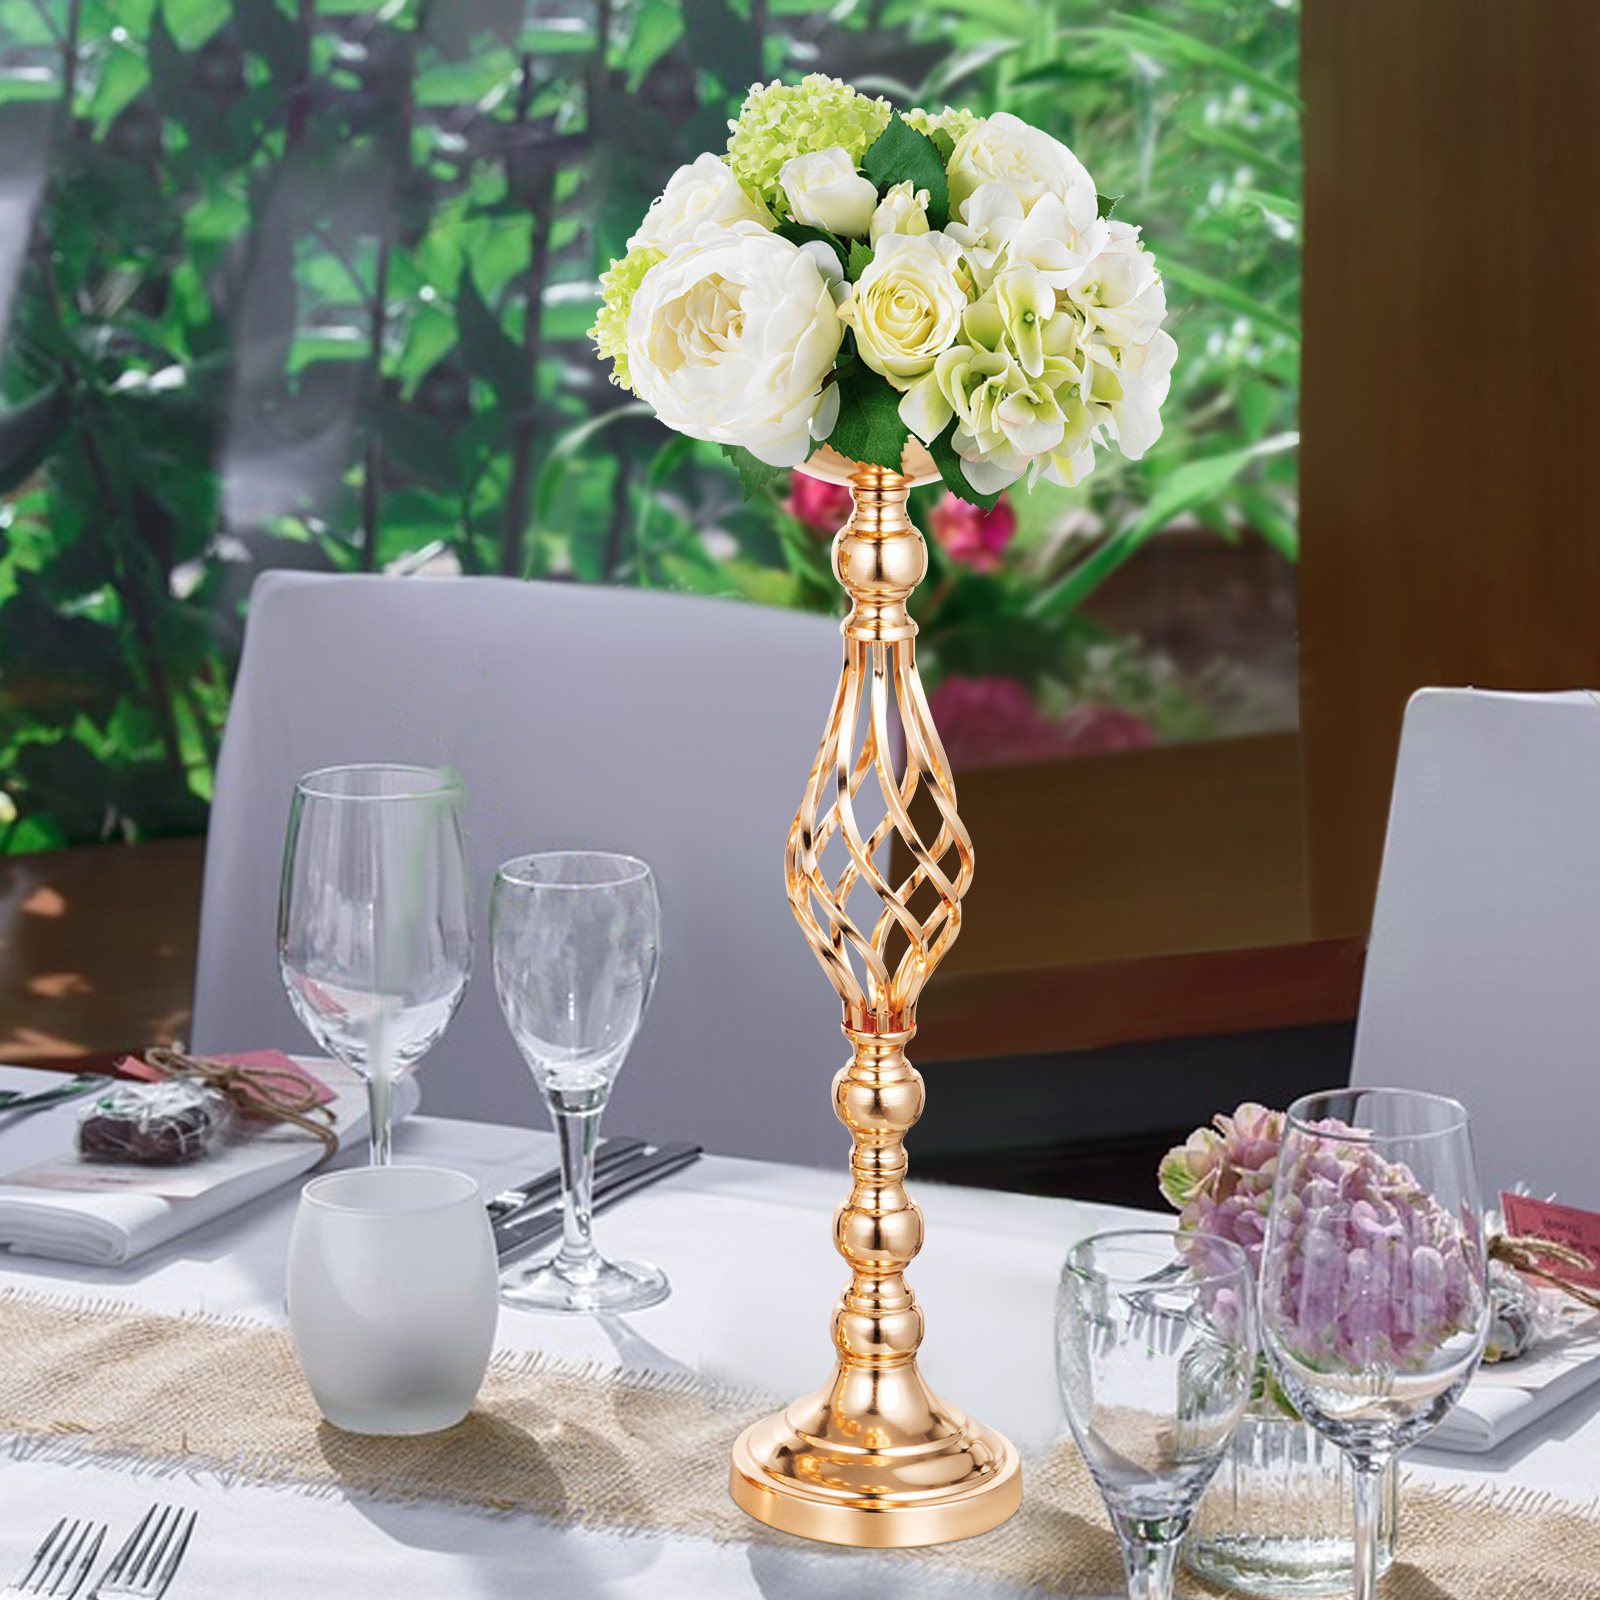 Flower-Rack-for-Wedding-Metal-Candle-Stand-4-11pcs-Centerpiece-Flower-Vase thumbnail 57